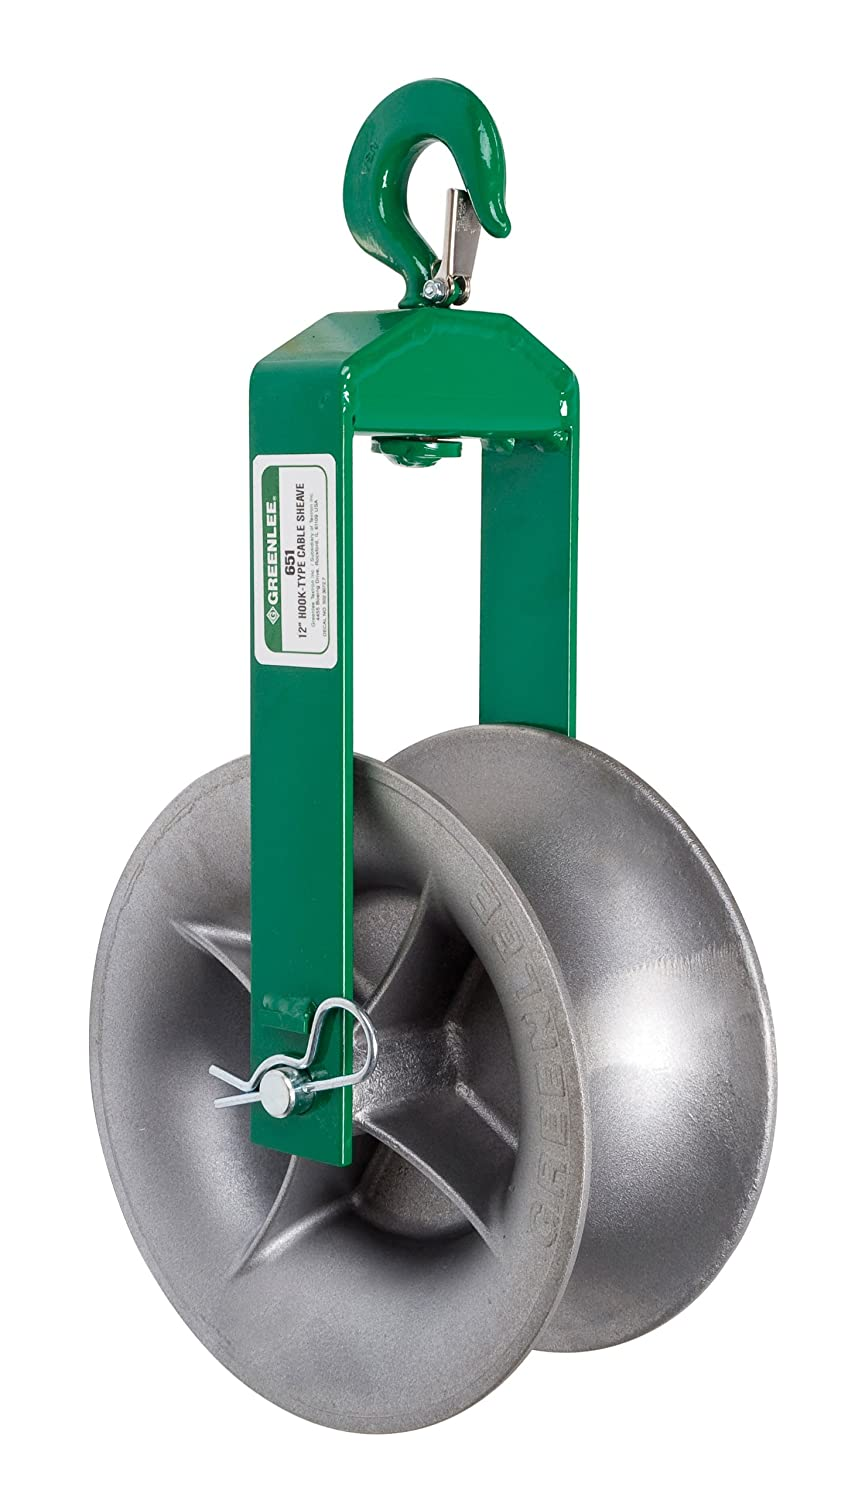 Greenlee 651 Hook Sheave, 4000-Pound Capacity, 12-Inch - Rigging ...